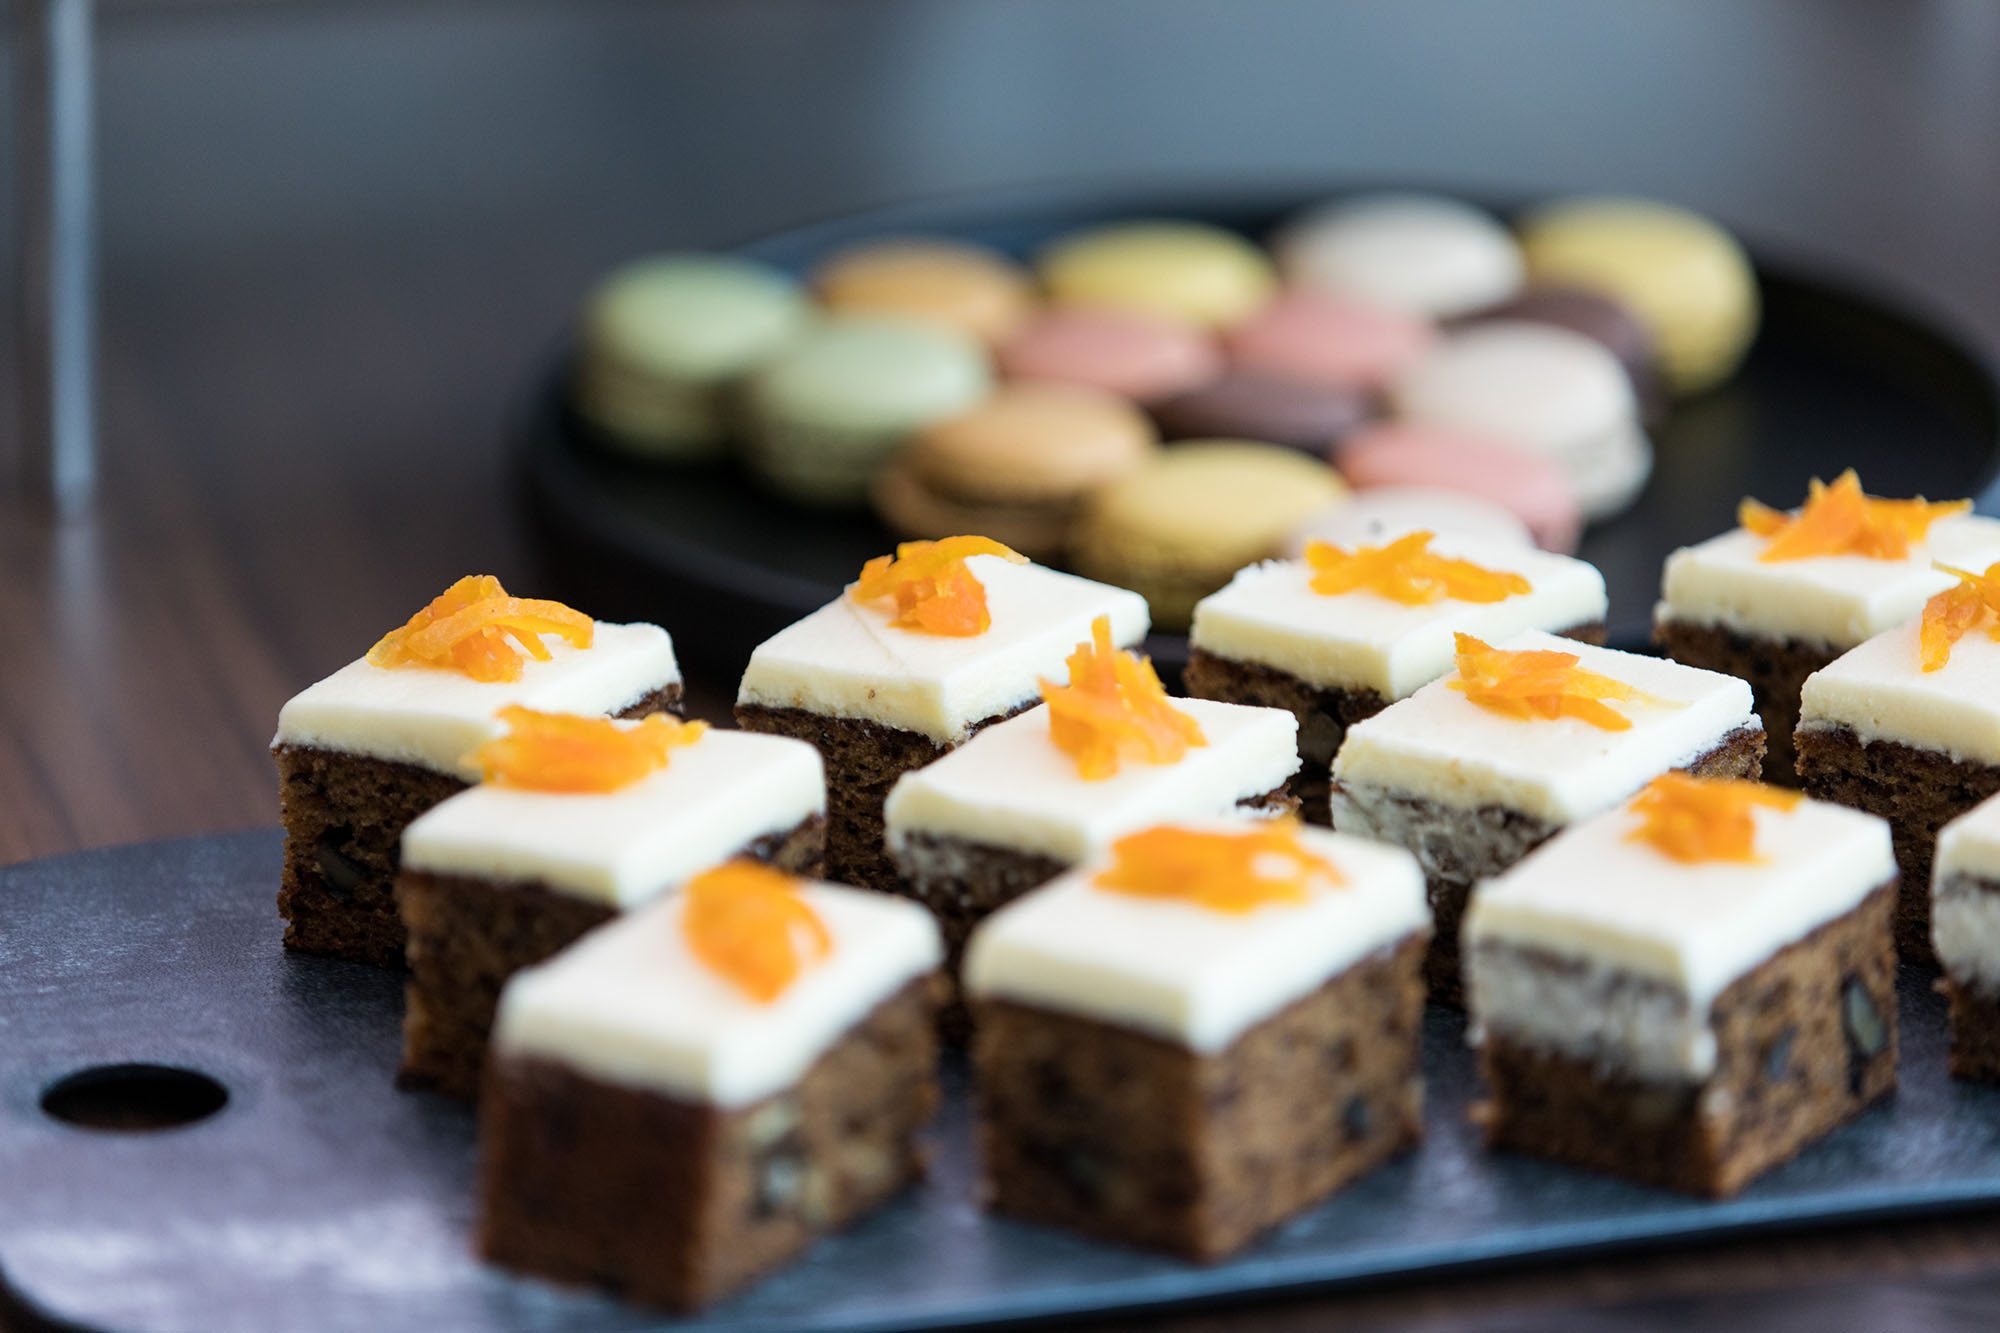 A selection of squares of carrot cake on a plate